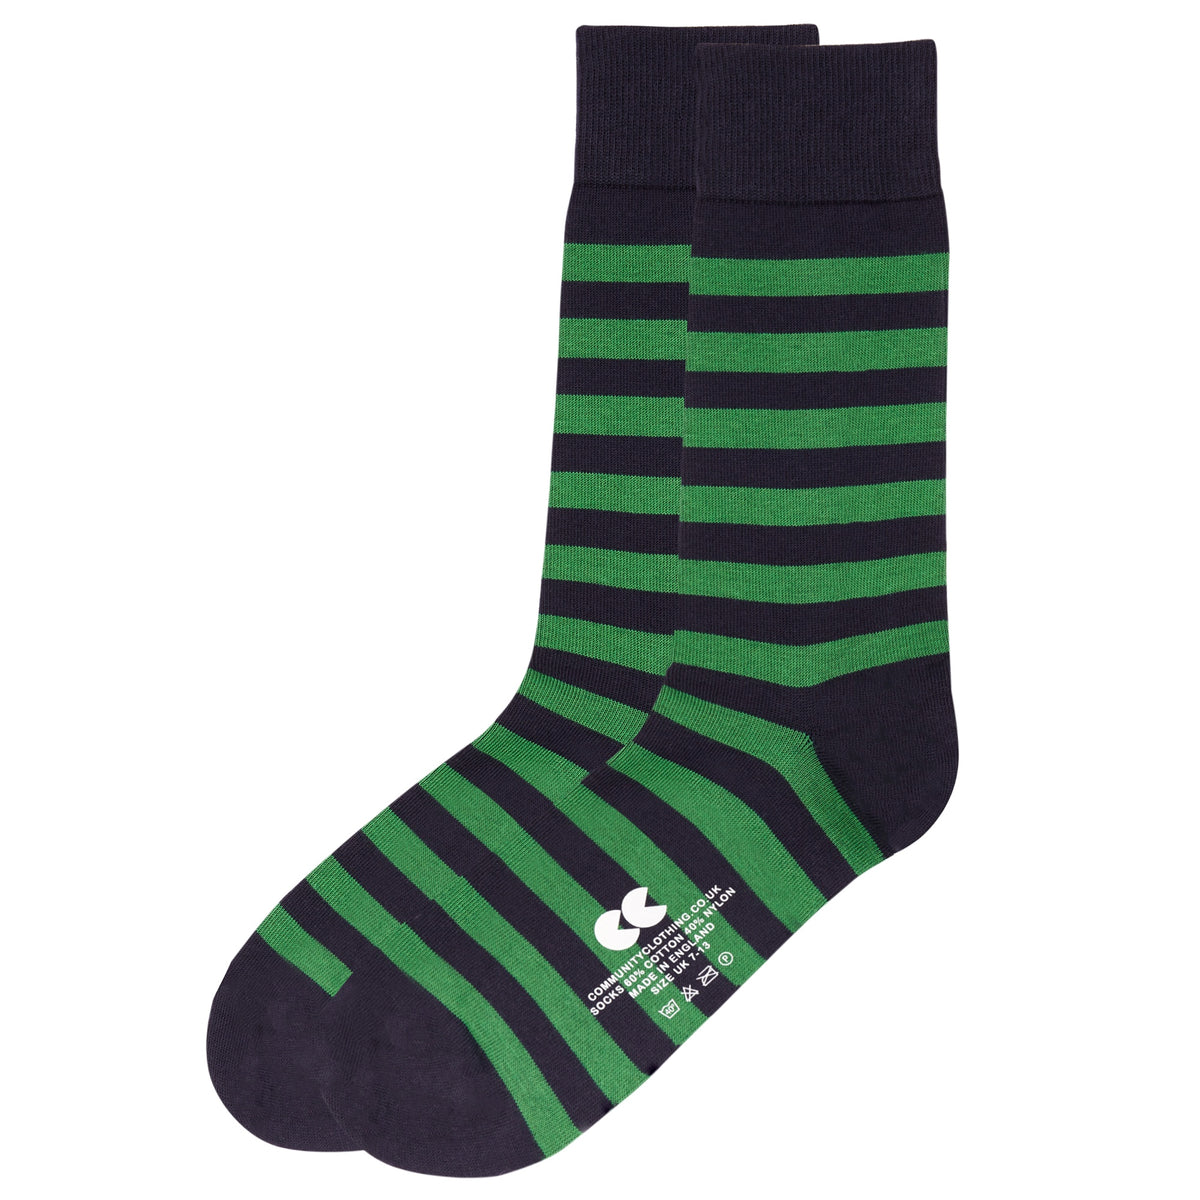 Striped Socks Navy/Green - Community Clothing